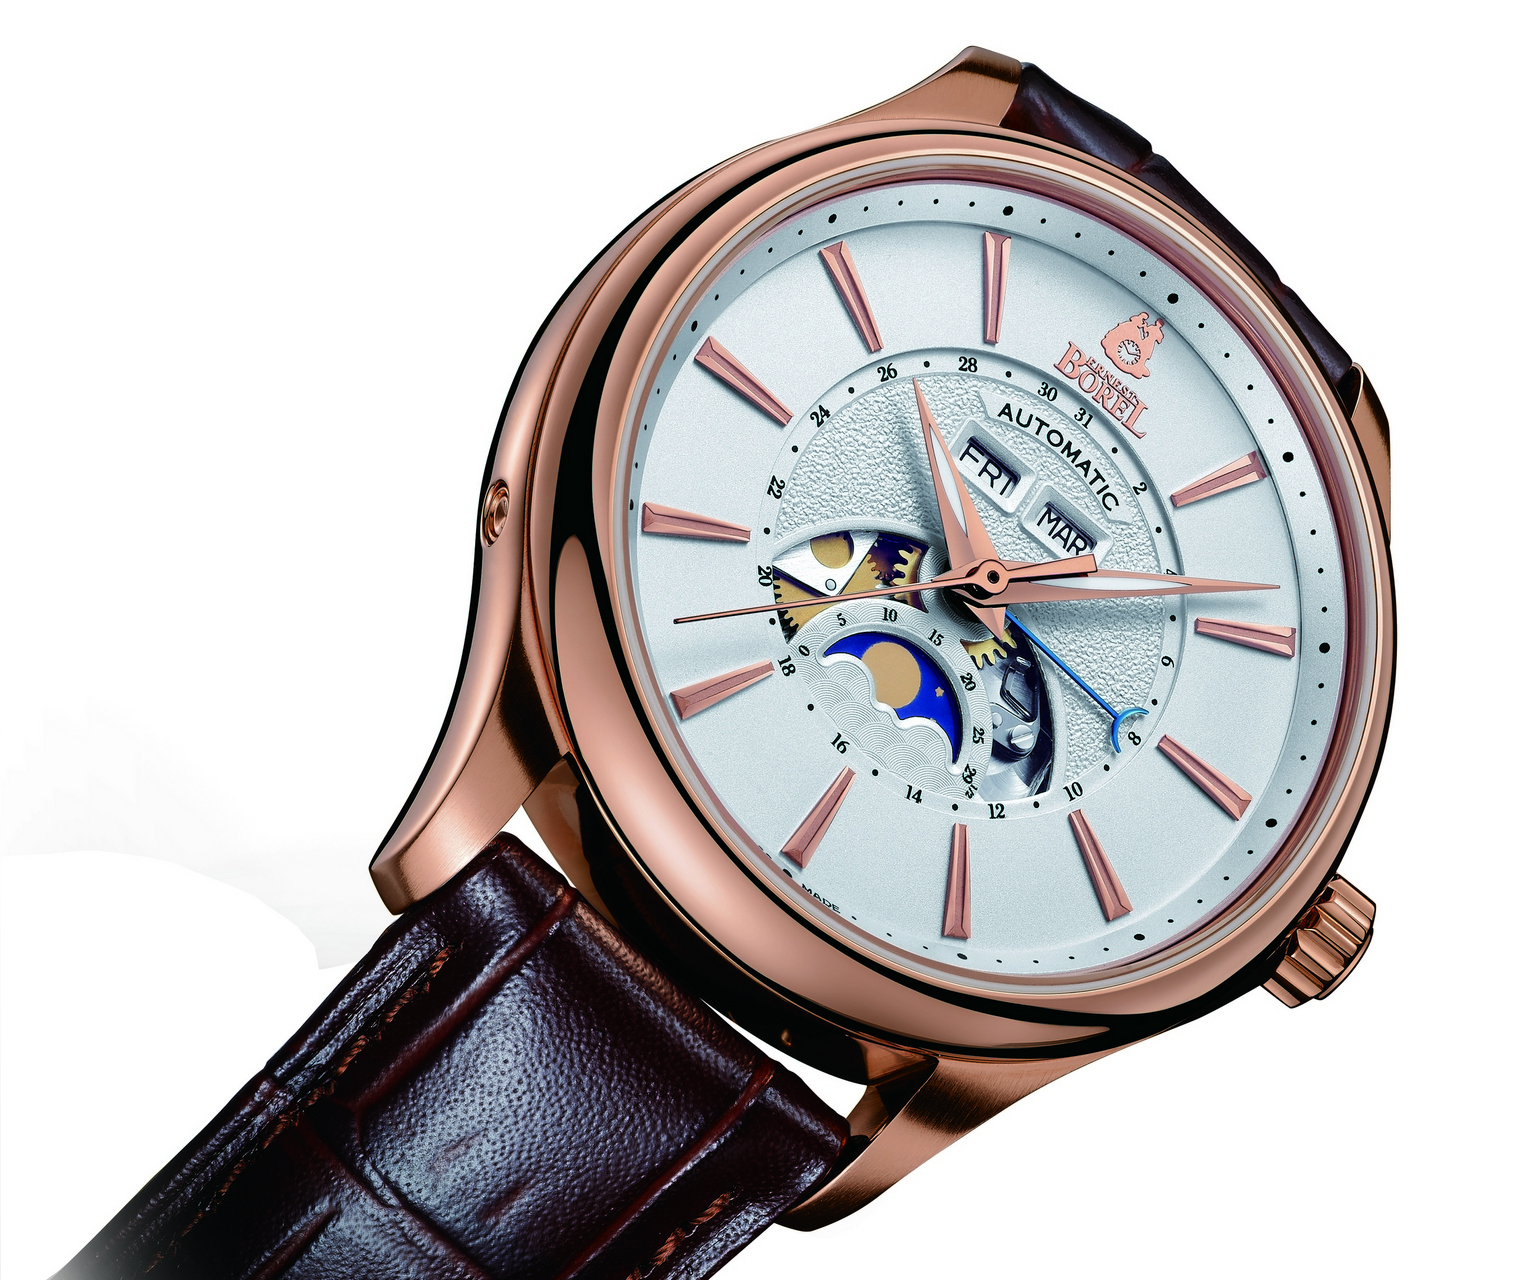 anteprima-baselworld-2015-ernest-borel-duke-collection_0-100_1